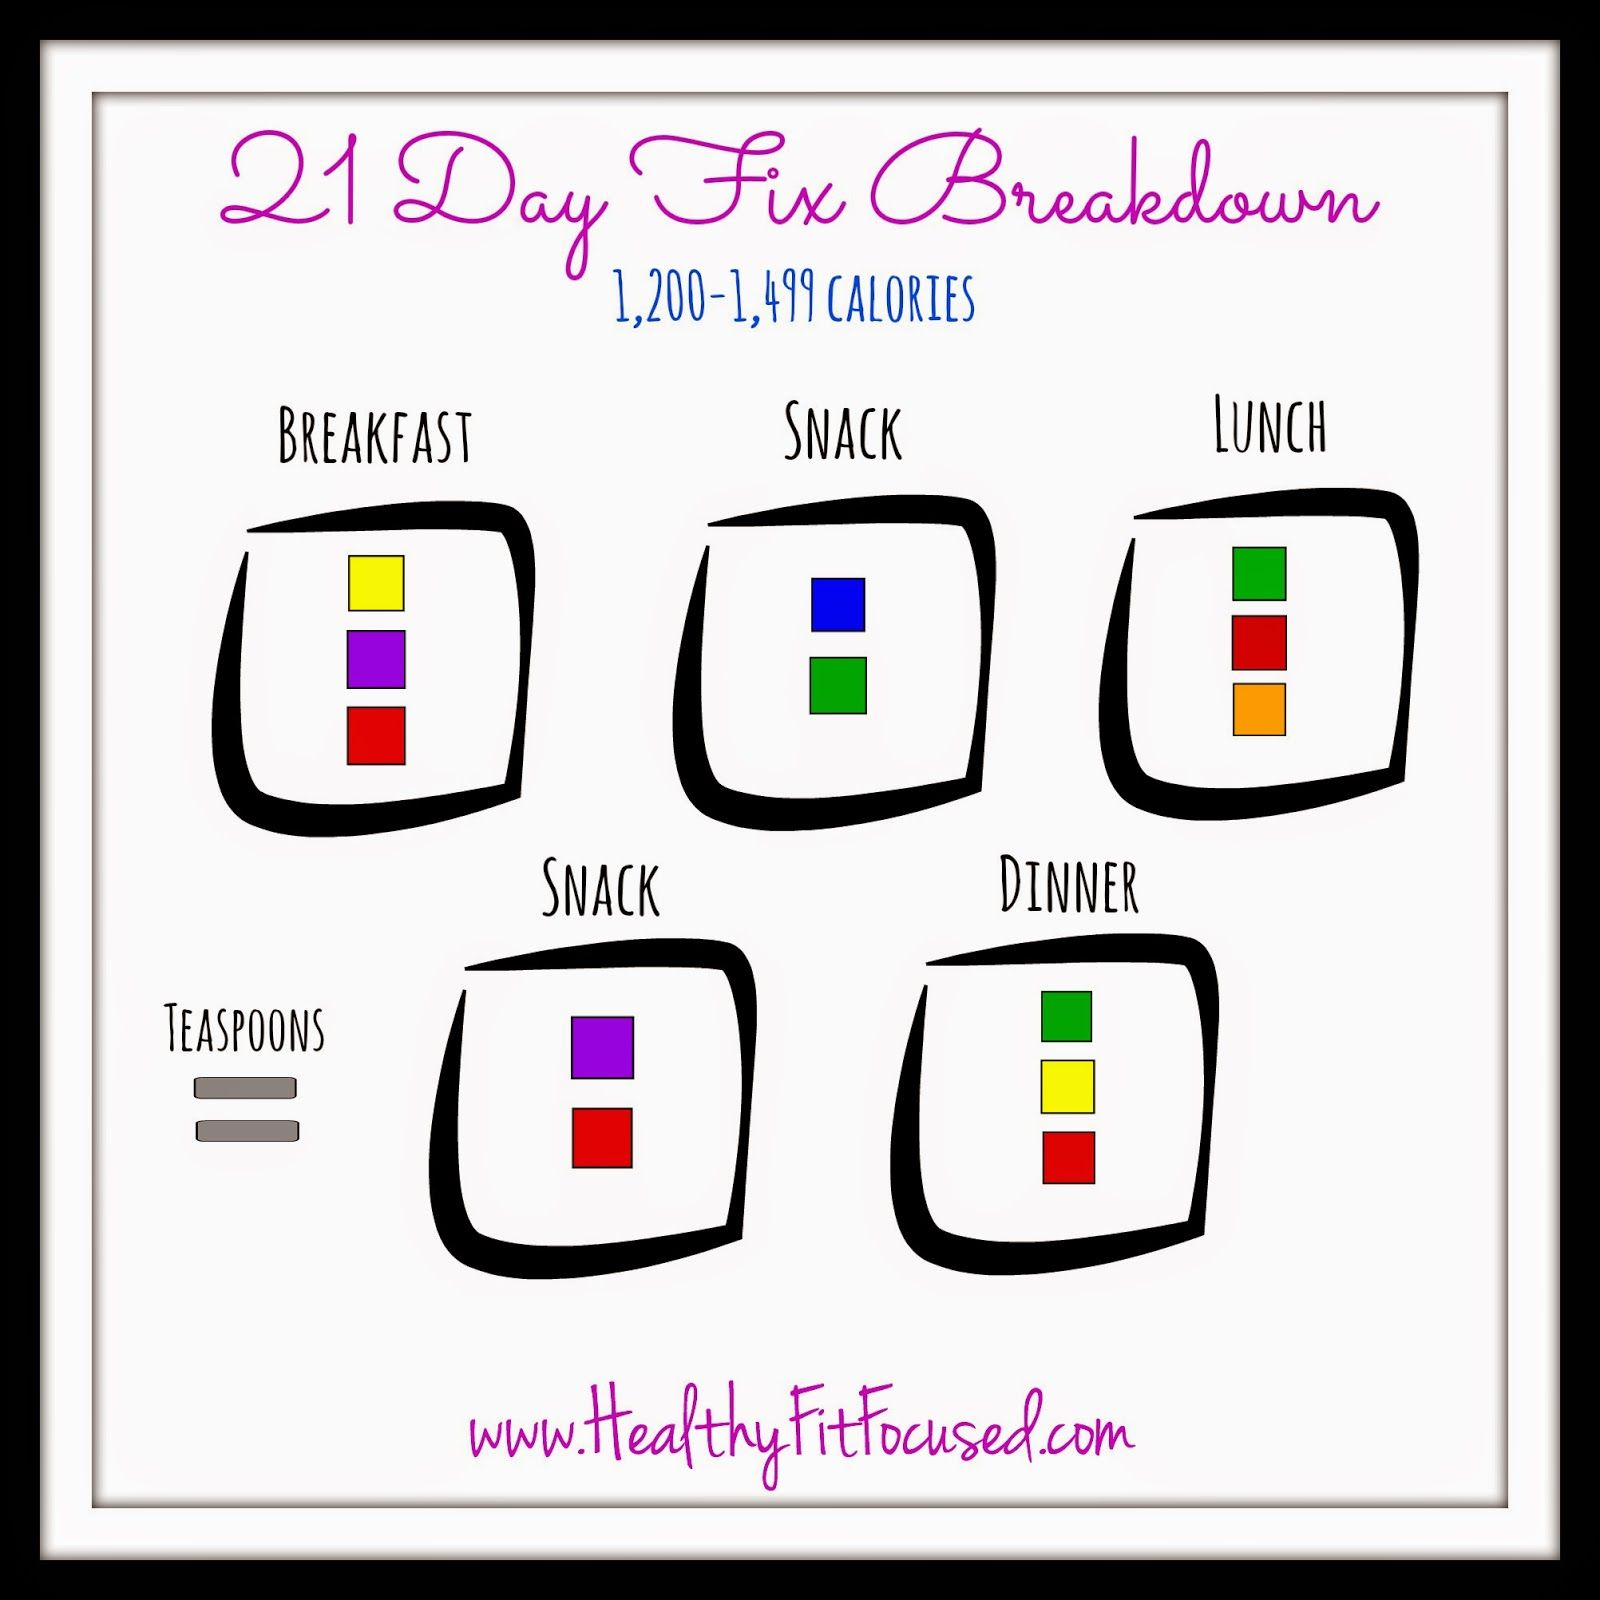 day fix meal breakdown cheat sheet made easy calories more at healthyfitfocused also rh pinterest